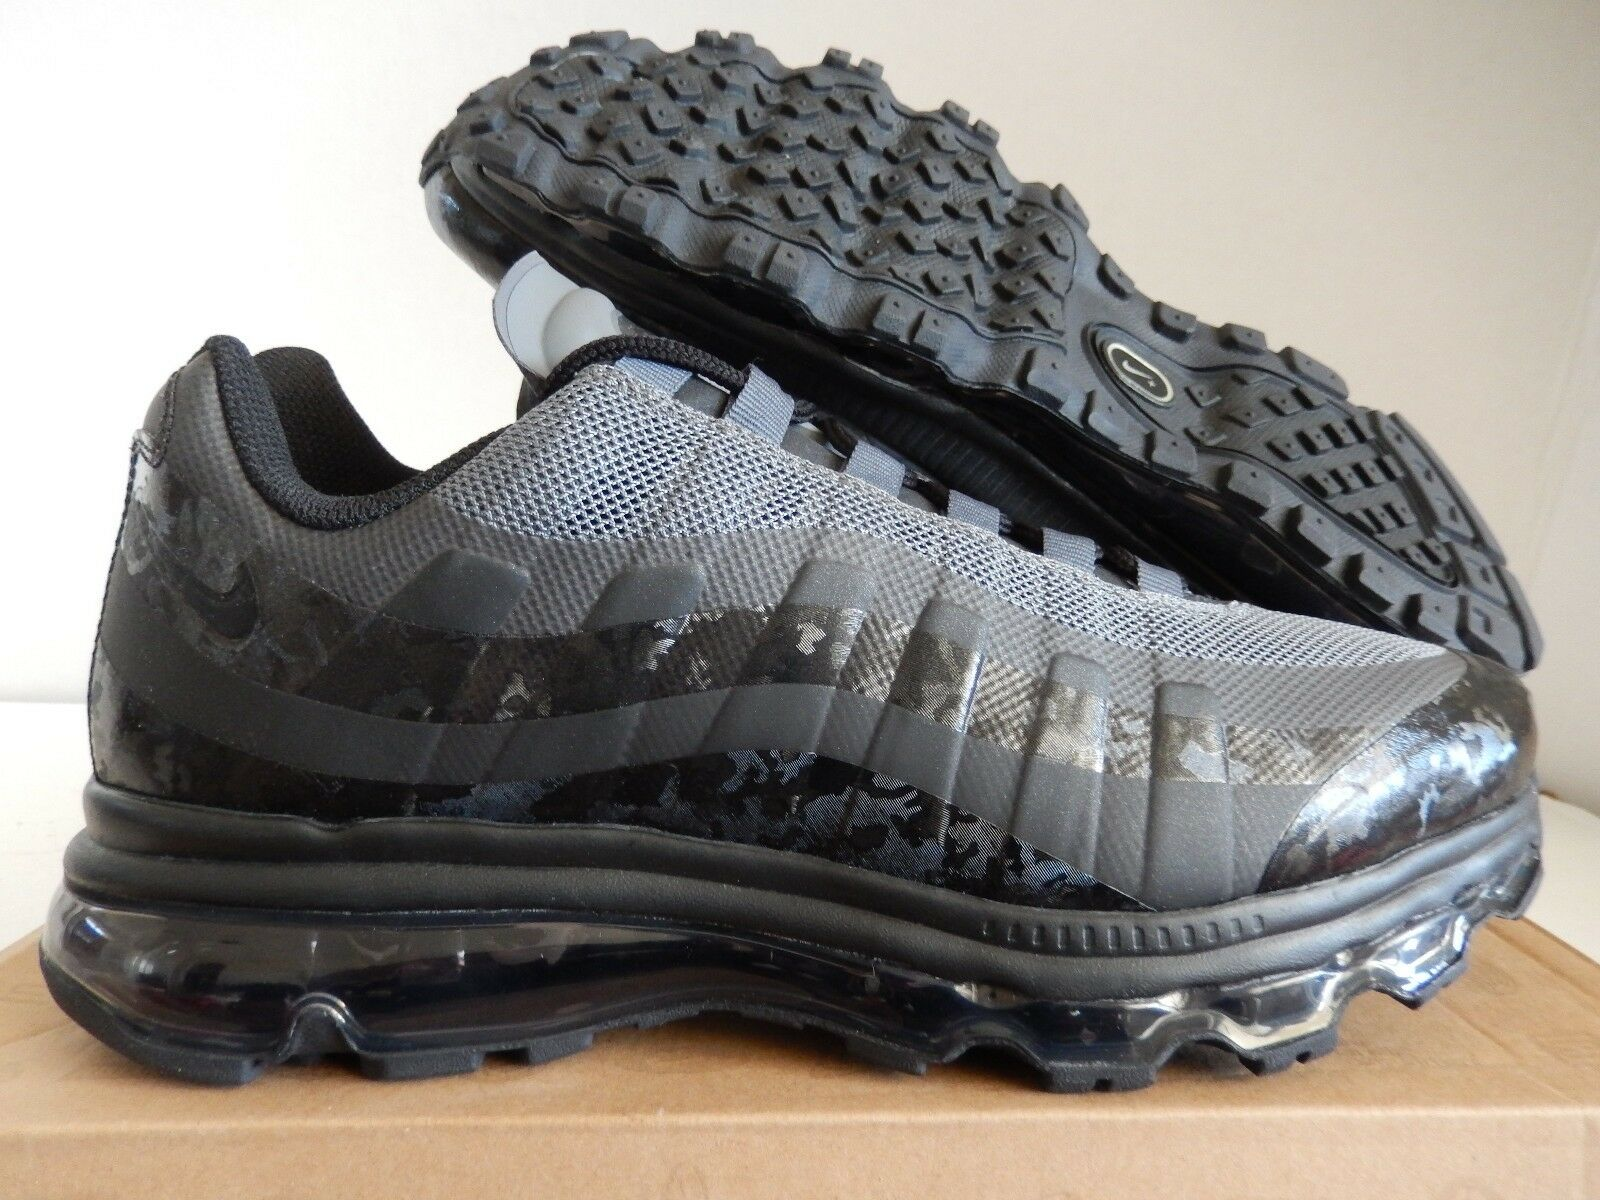 NIKE AIR MAX 95 + BB BLACK-ANTHRACITE-DARK GREY SZ 10